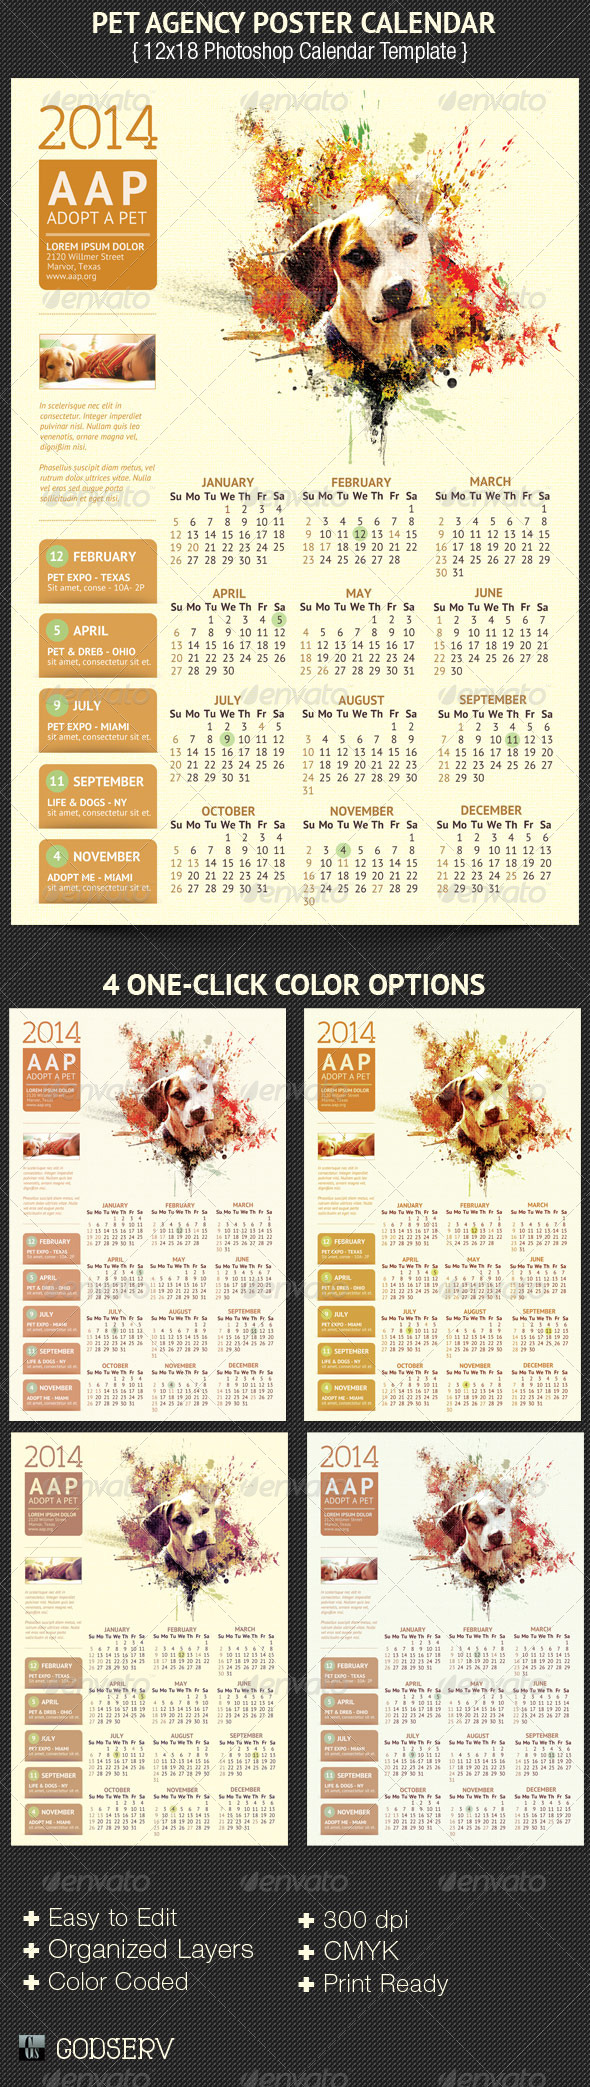 Pet Agency Poster Calendar Template - Calendars Stationery